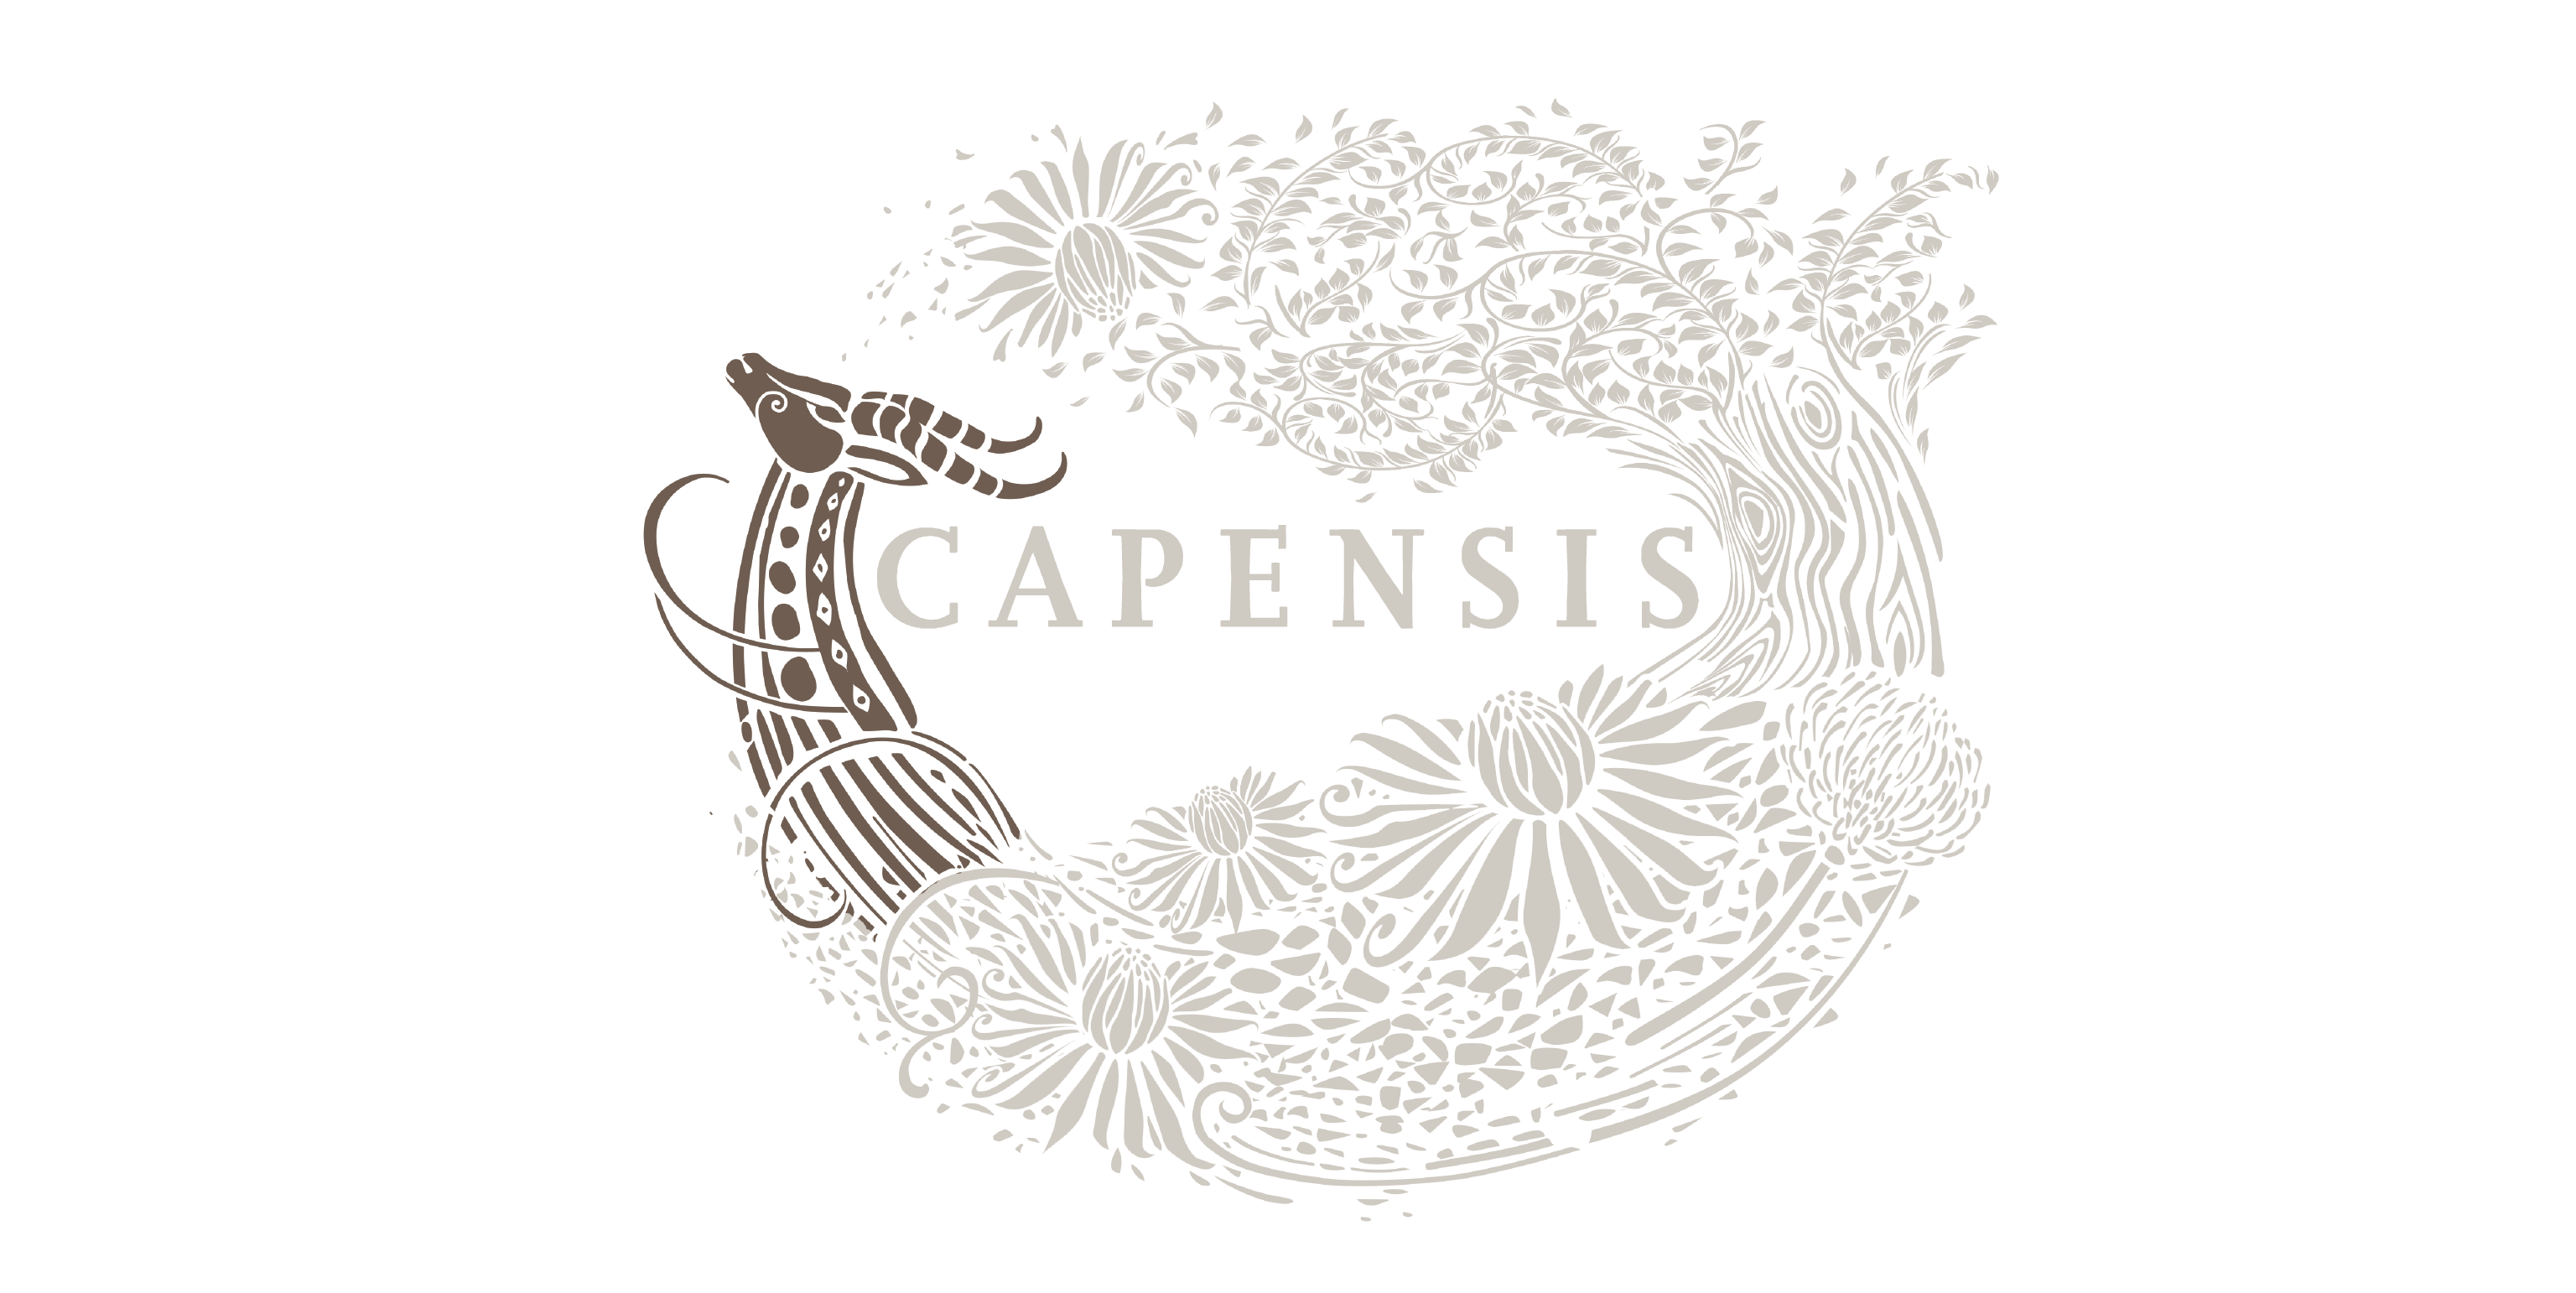 Capensis label with Springbok highlighted